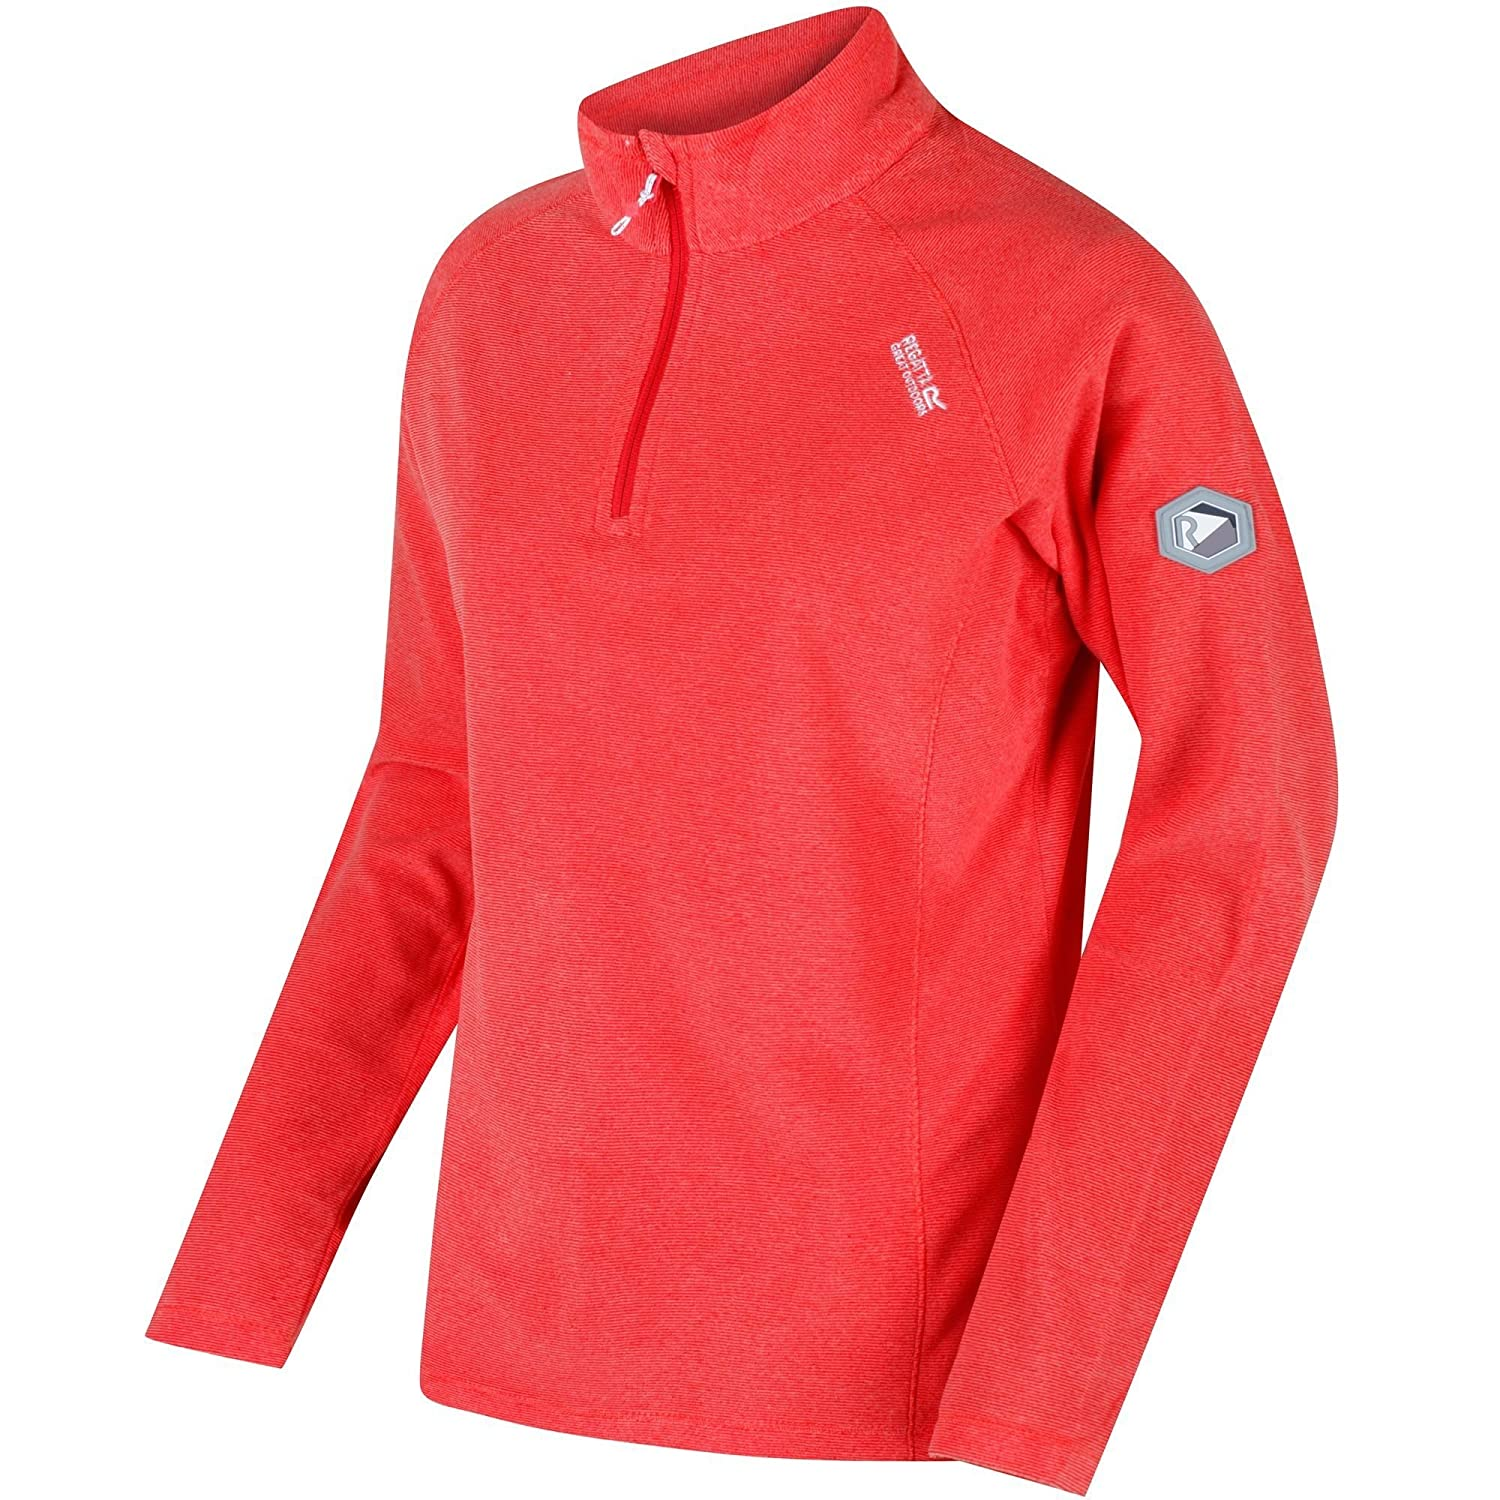 Regatta Great Outdoors Womens/Ladies Montes Half Zip Fleece Top